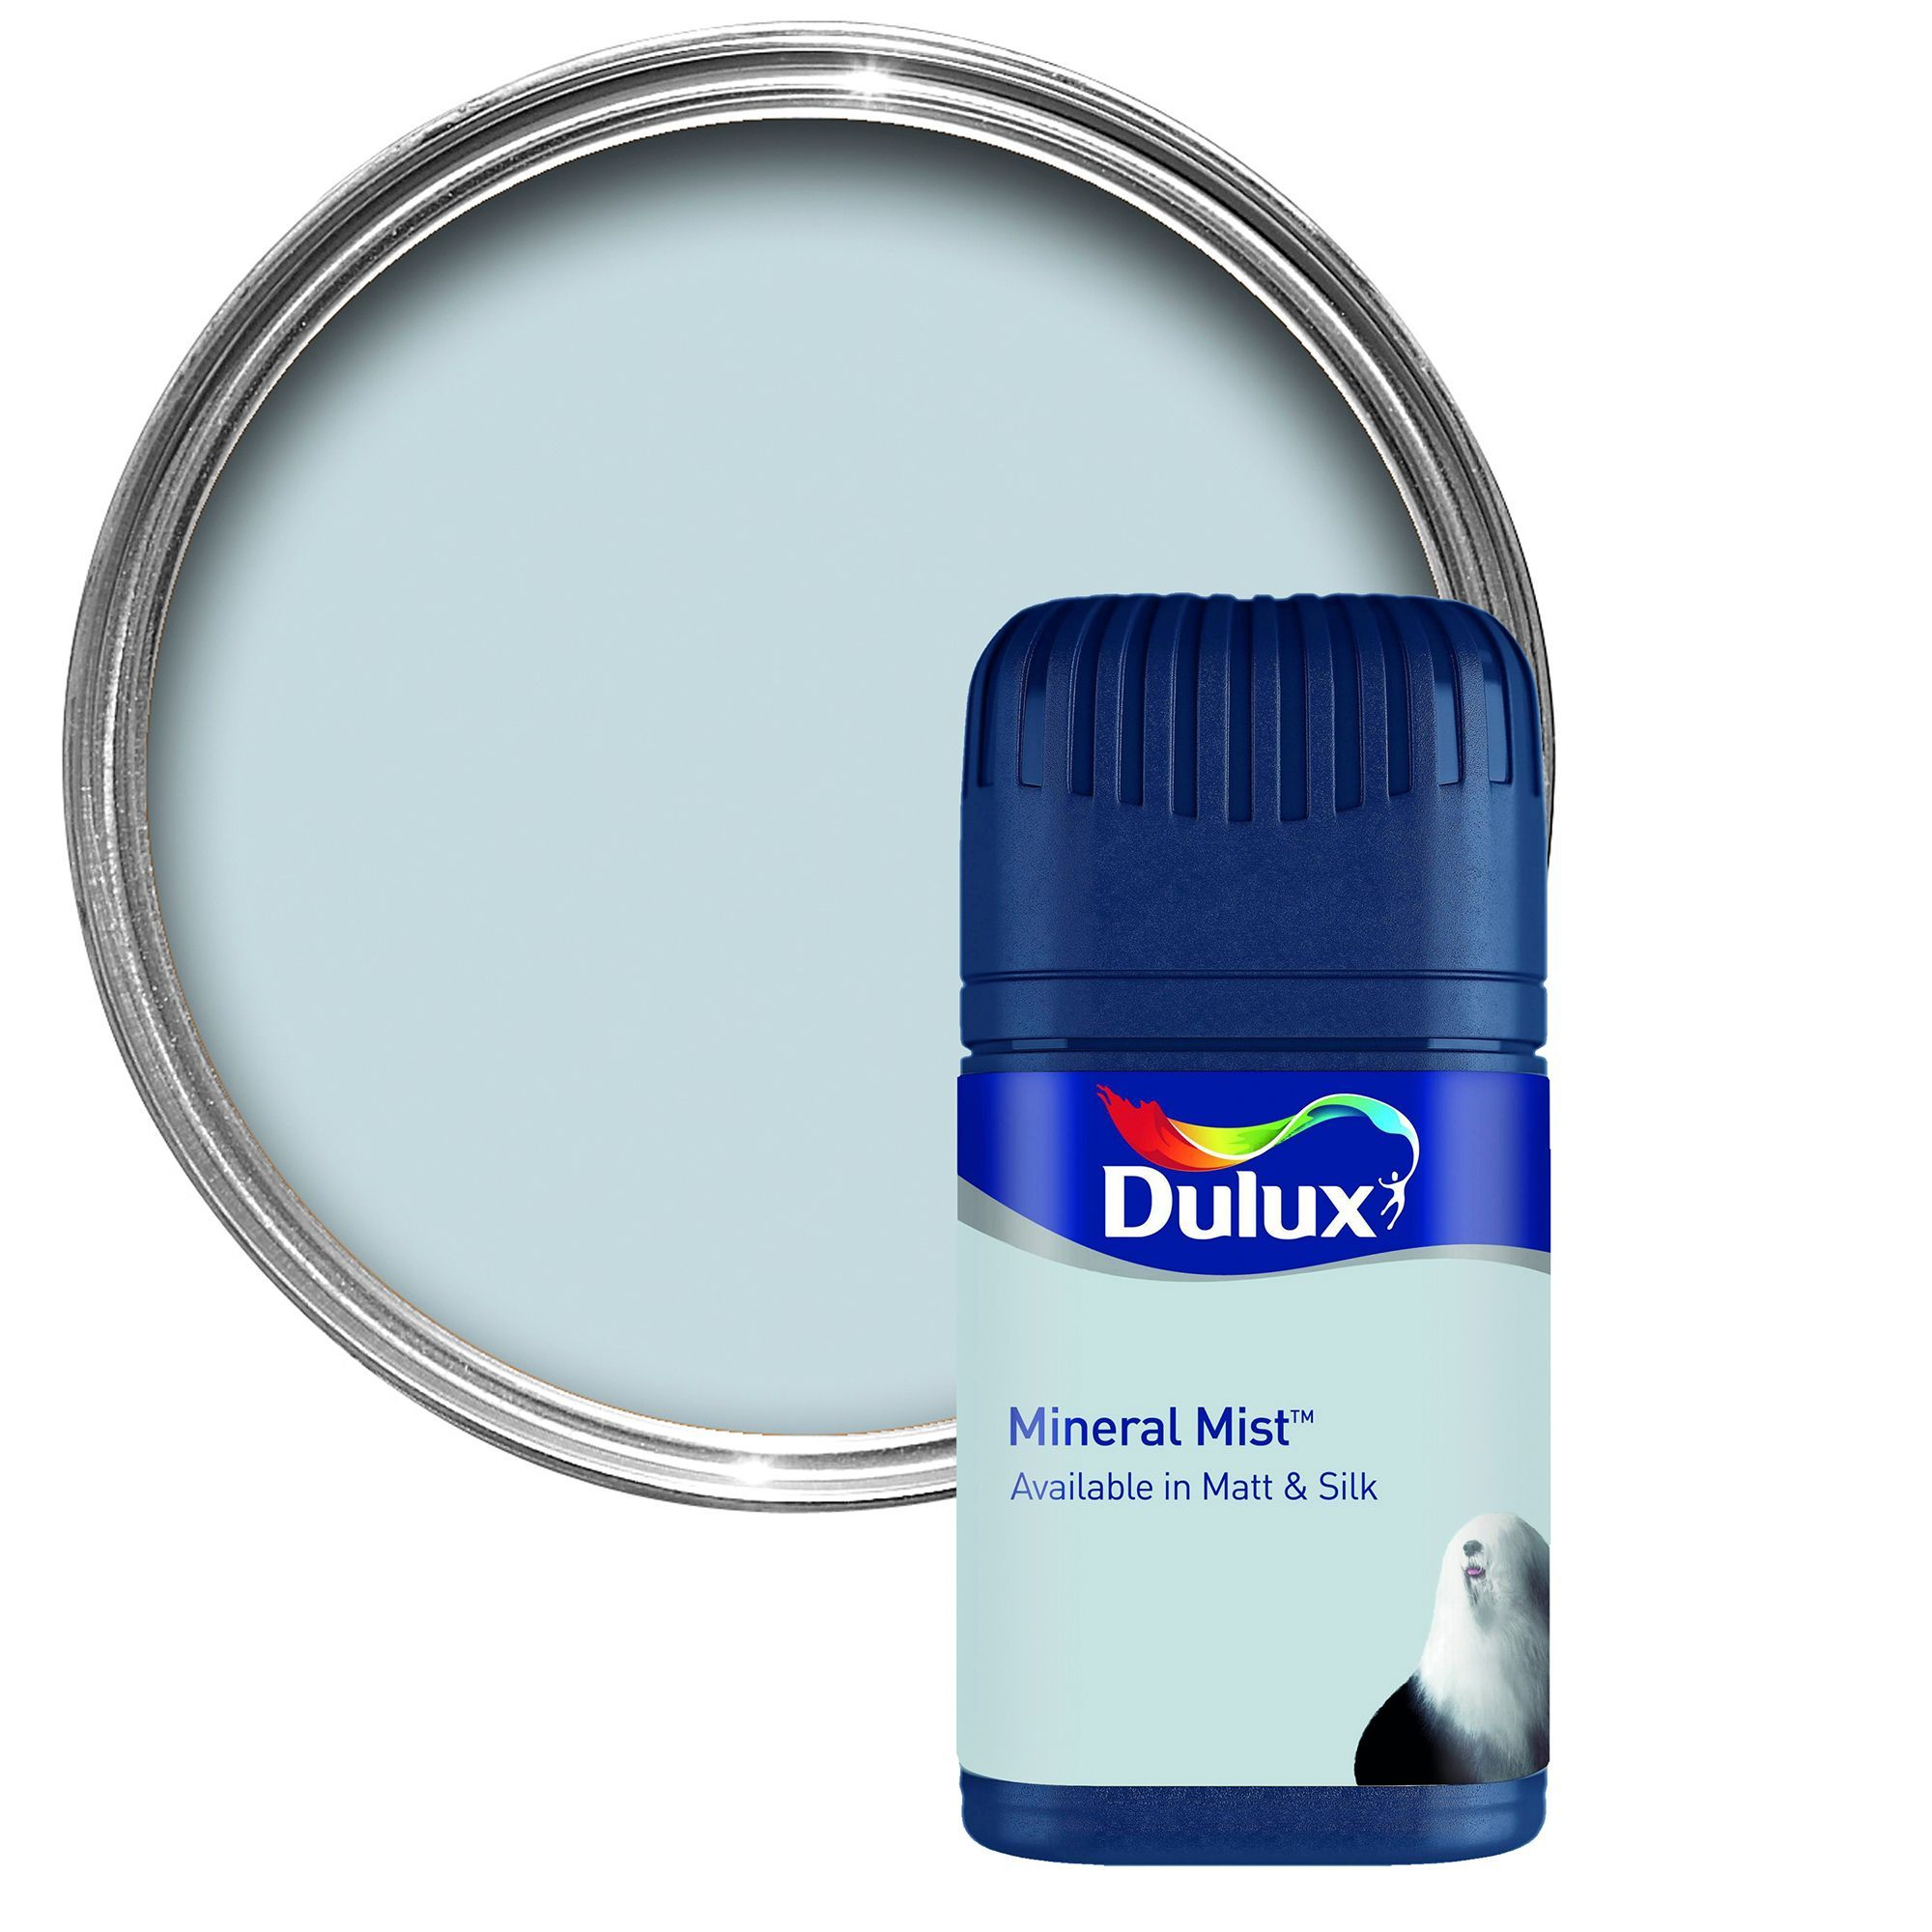 Dulux Mineral Mist Matt Emulsion Paint 50ml Tester Pot | Departments | DIY at B&Q